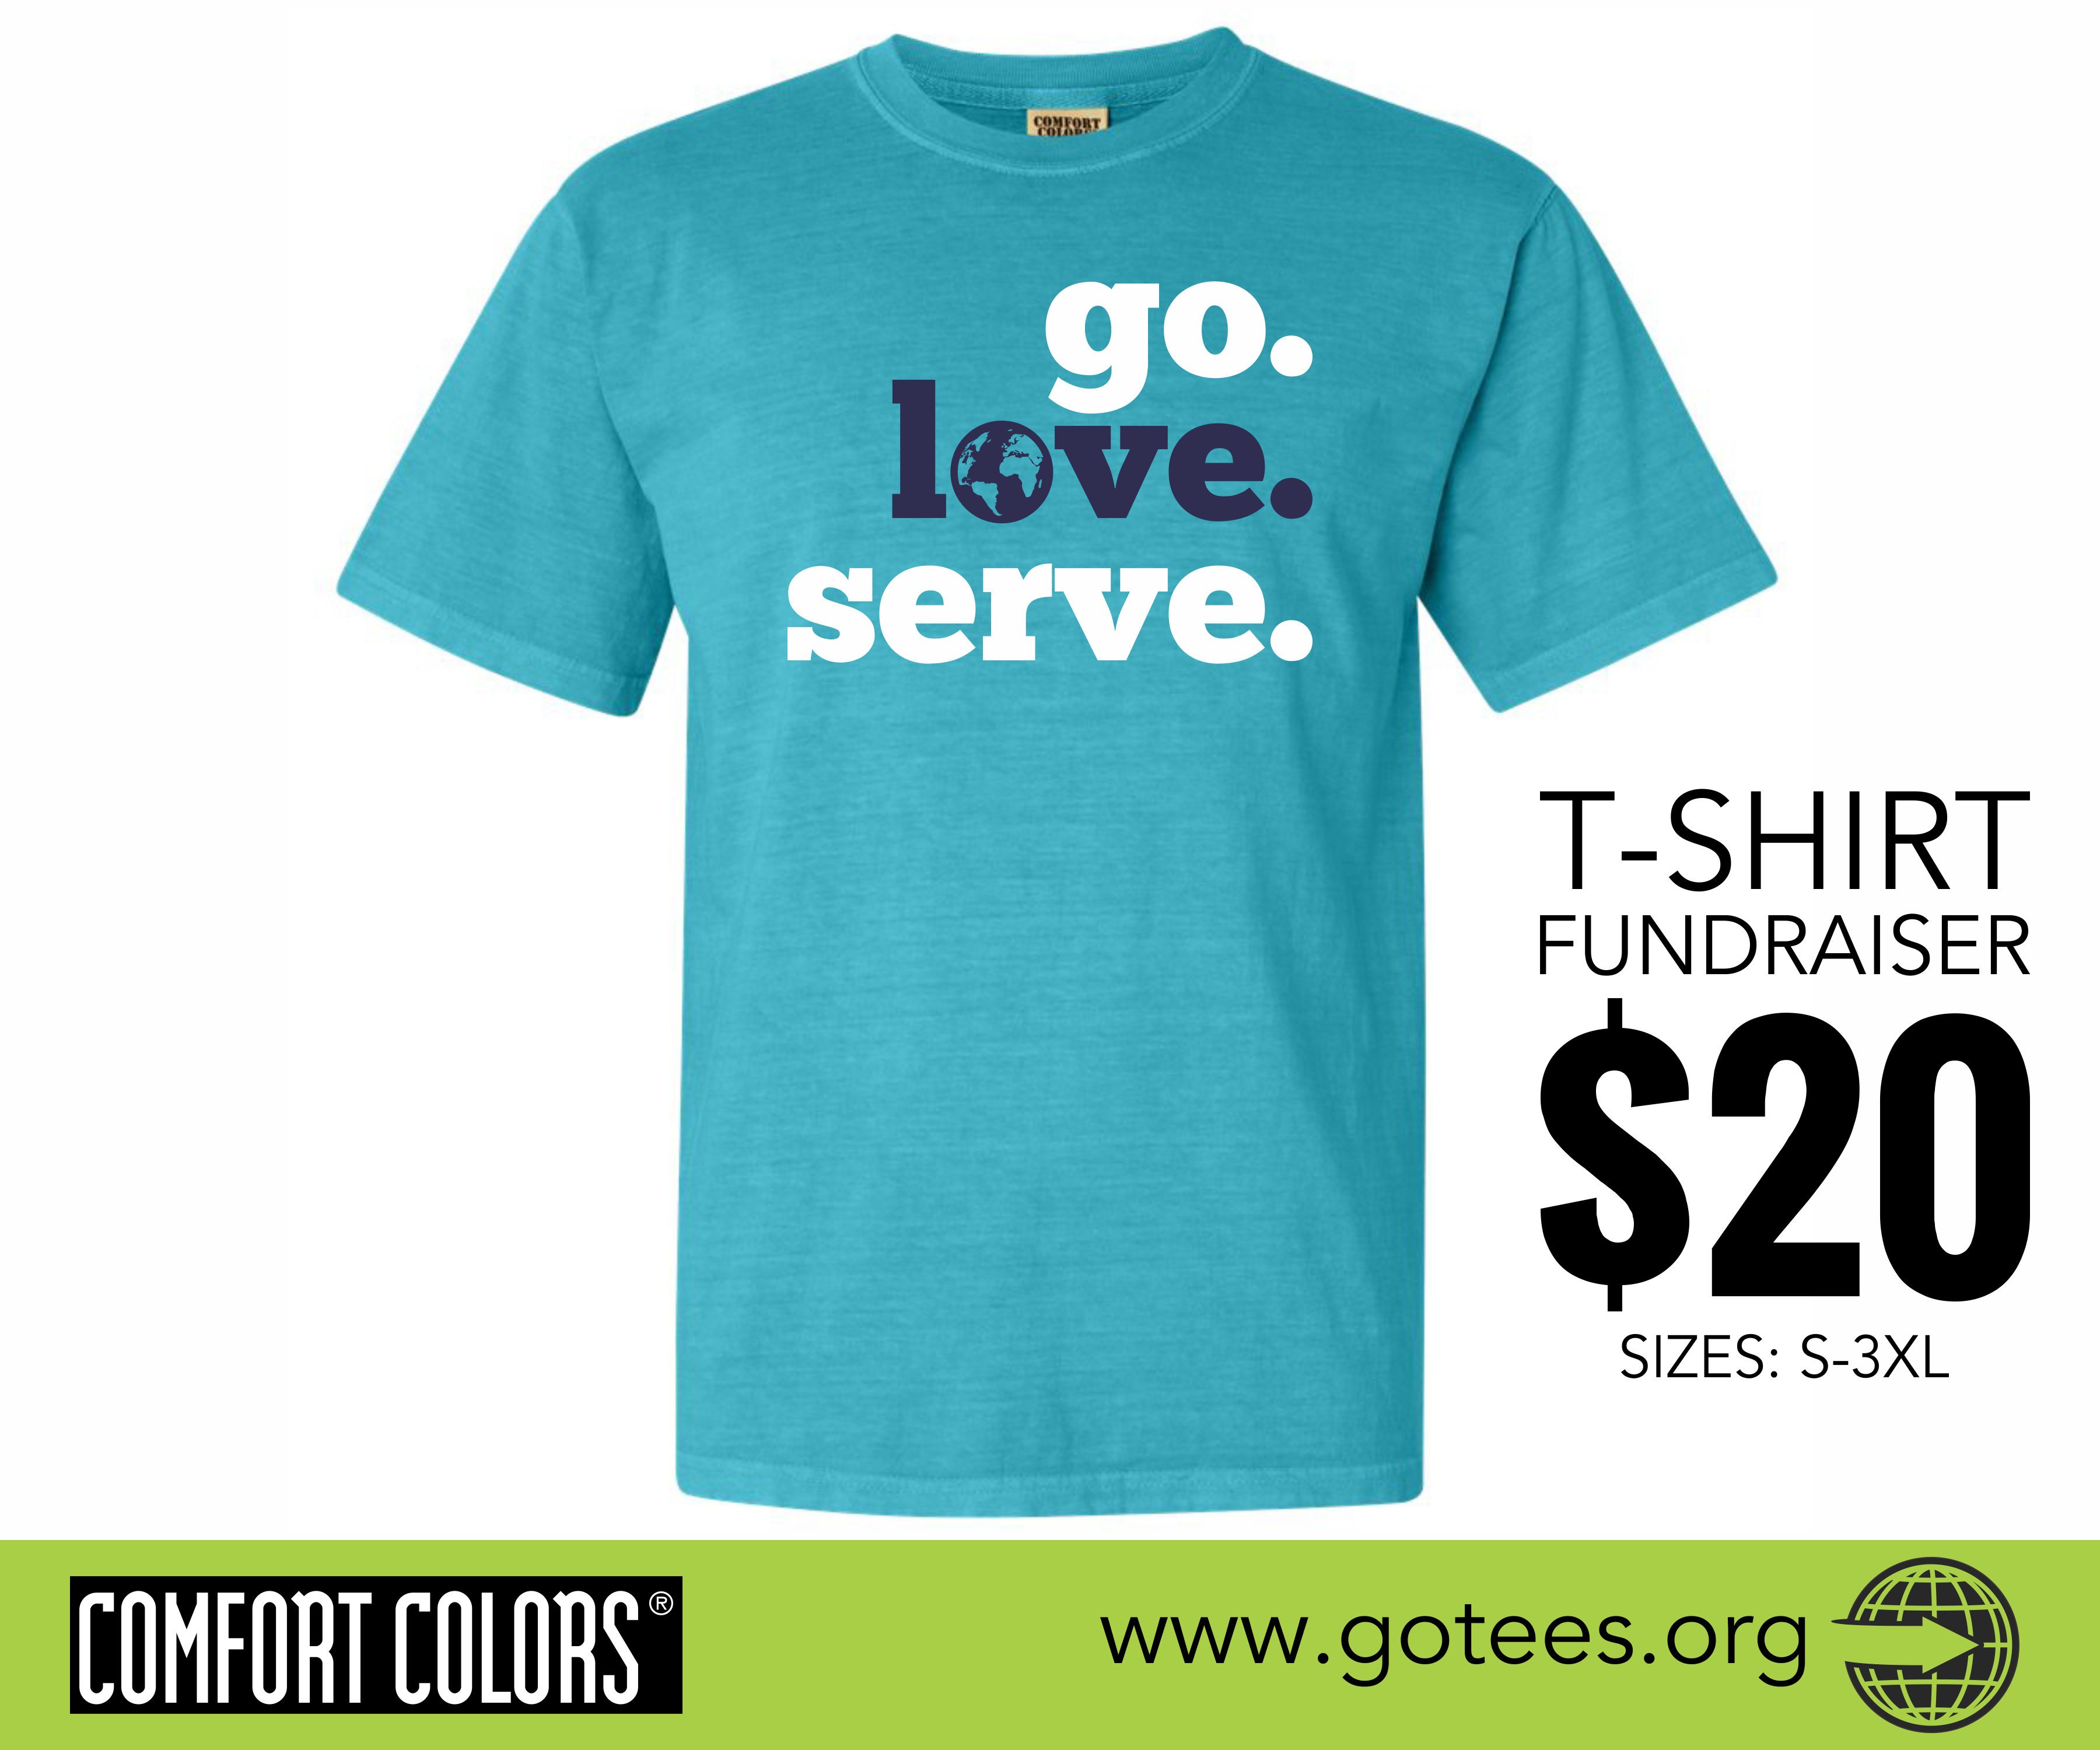 Design t shirt for fundraiser - You May Want To Consider Our New Online Fundraiser Gotees Has The Capability To Produce Incredible T Shirt Fundraising Campaigns Online